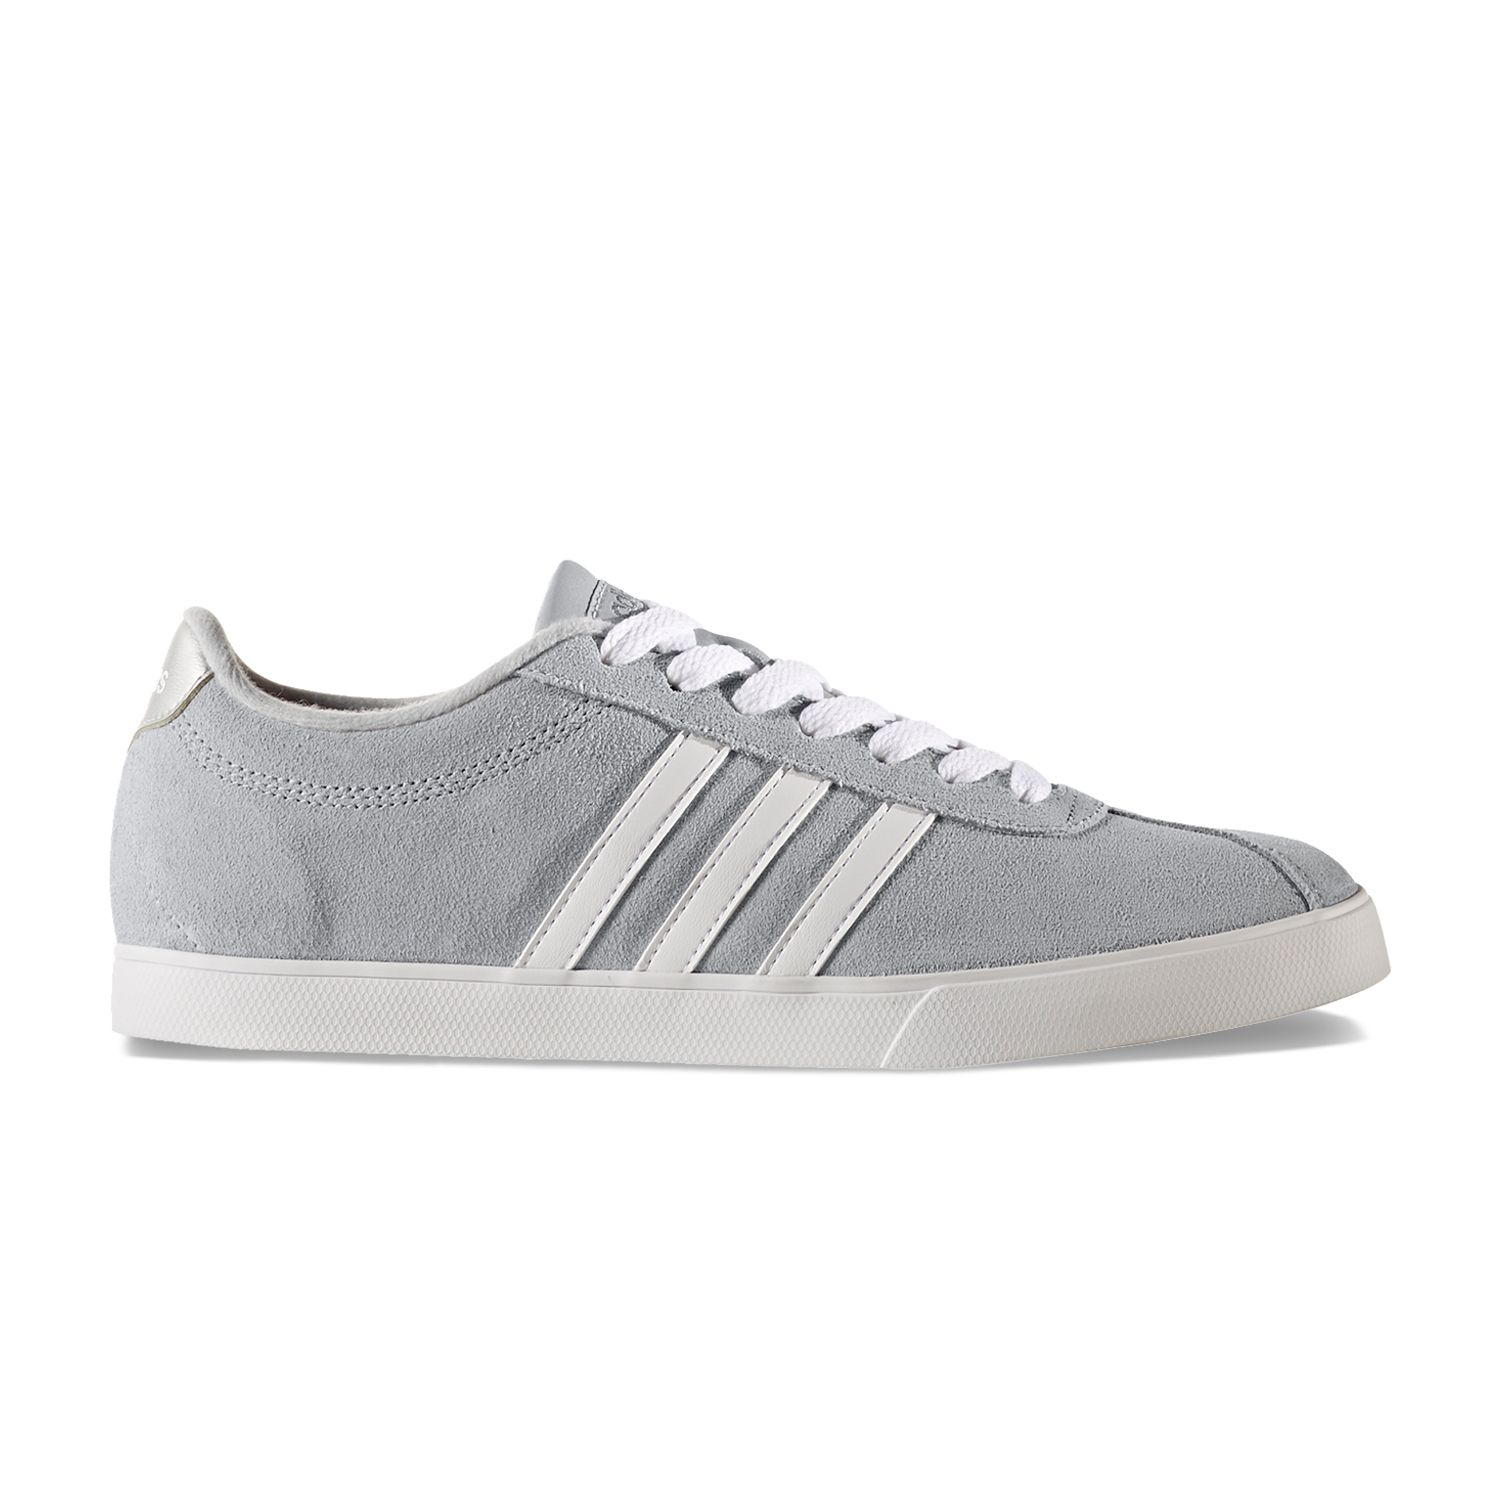 adidas NEO Courtset Women\u0027s Suede Sneakers. Gray White Chalk Olive Navy  Black Red